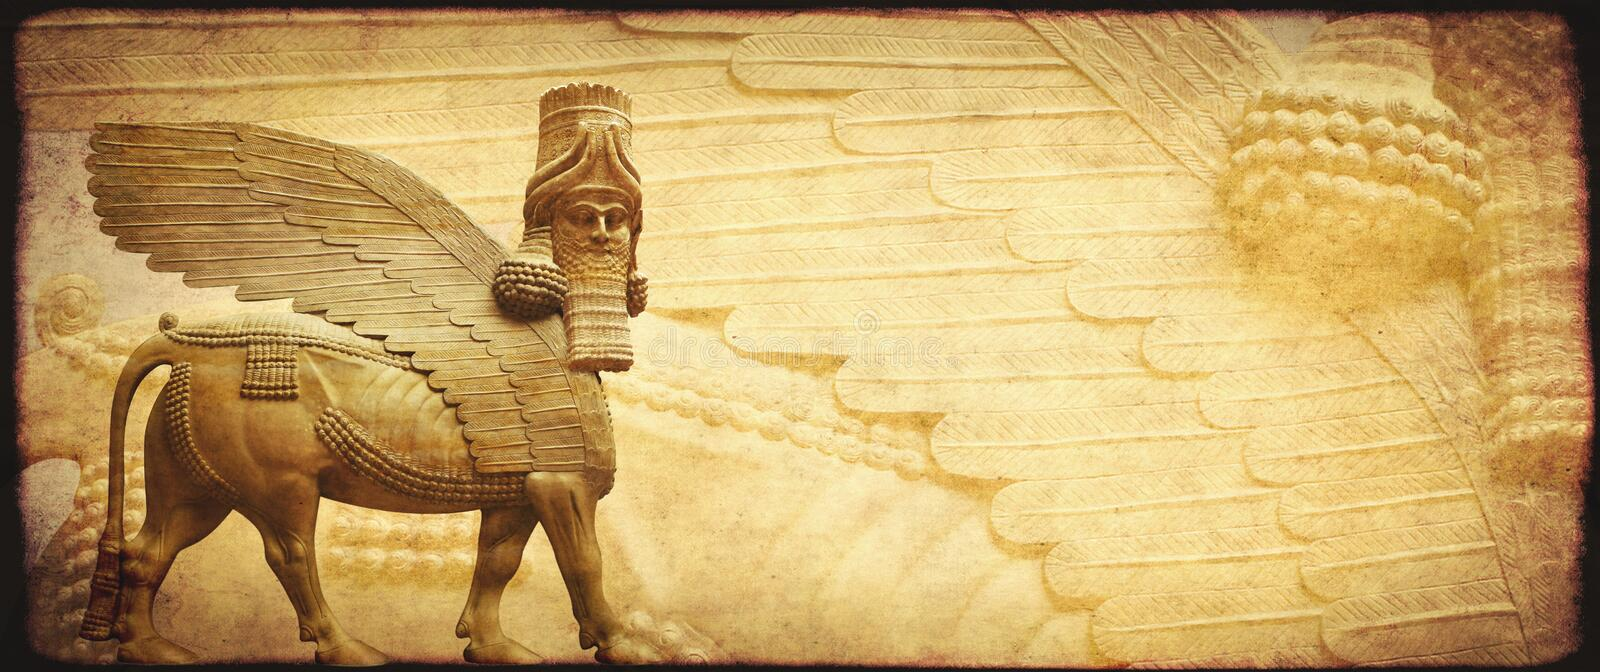 Grunge background with paper texture and lamassu royalty free stock images